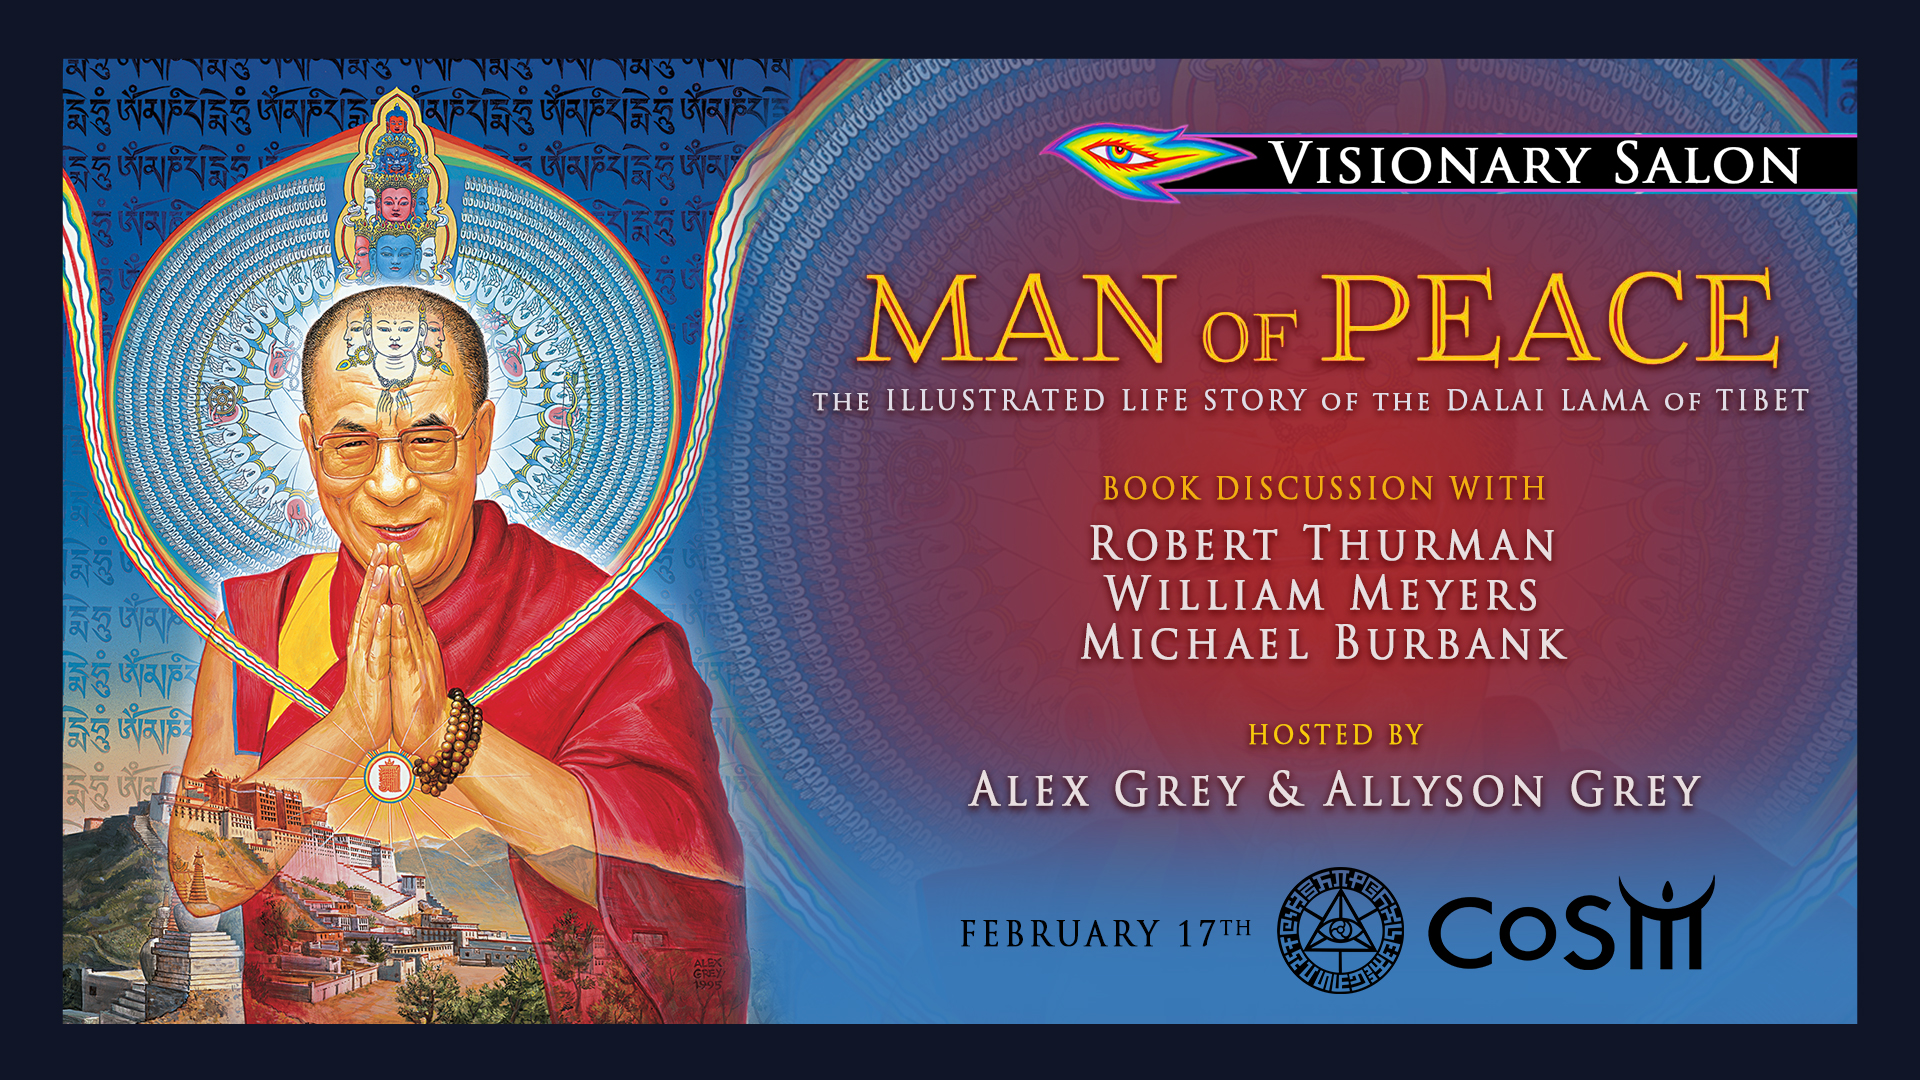 Visionary salon man of peace book discussion chapel of for A visionary salon